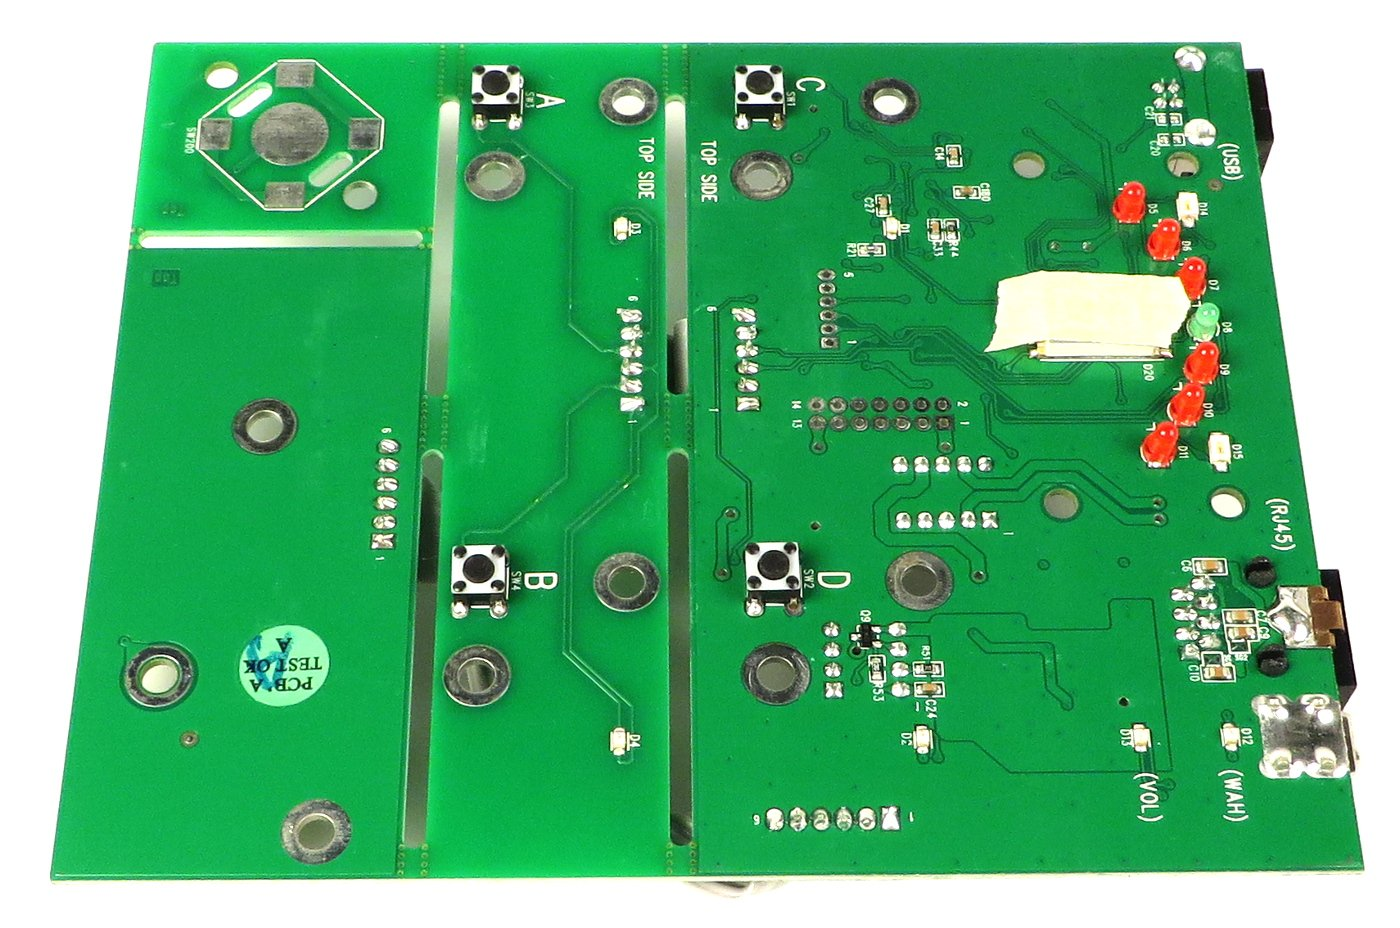 Main Pcb Assembly For Fbv Express Mk2 By Line 6 50 02 0264 Full Printed Circuit Board Photo From Wwwexpresspcbcom